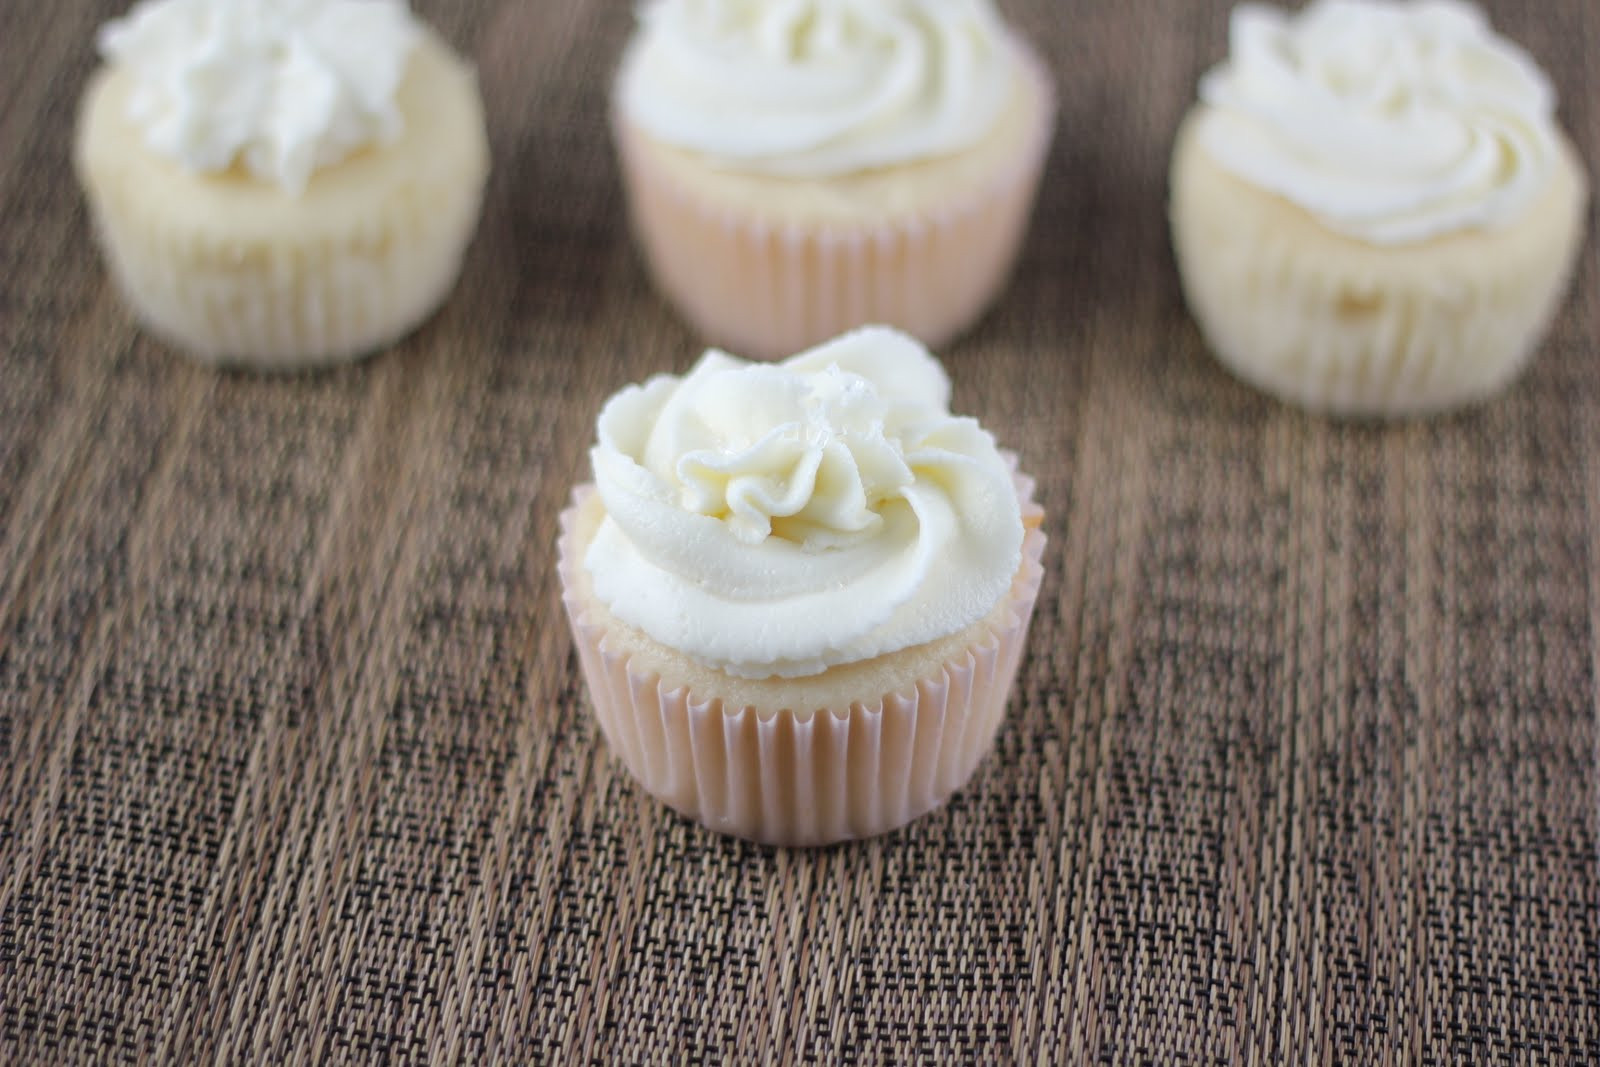 White Wedding Cake Cupcakes  White Wedding Cake Cupcakes A Zesty Bite